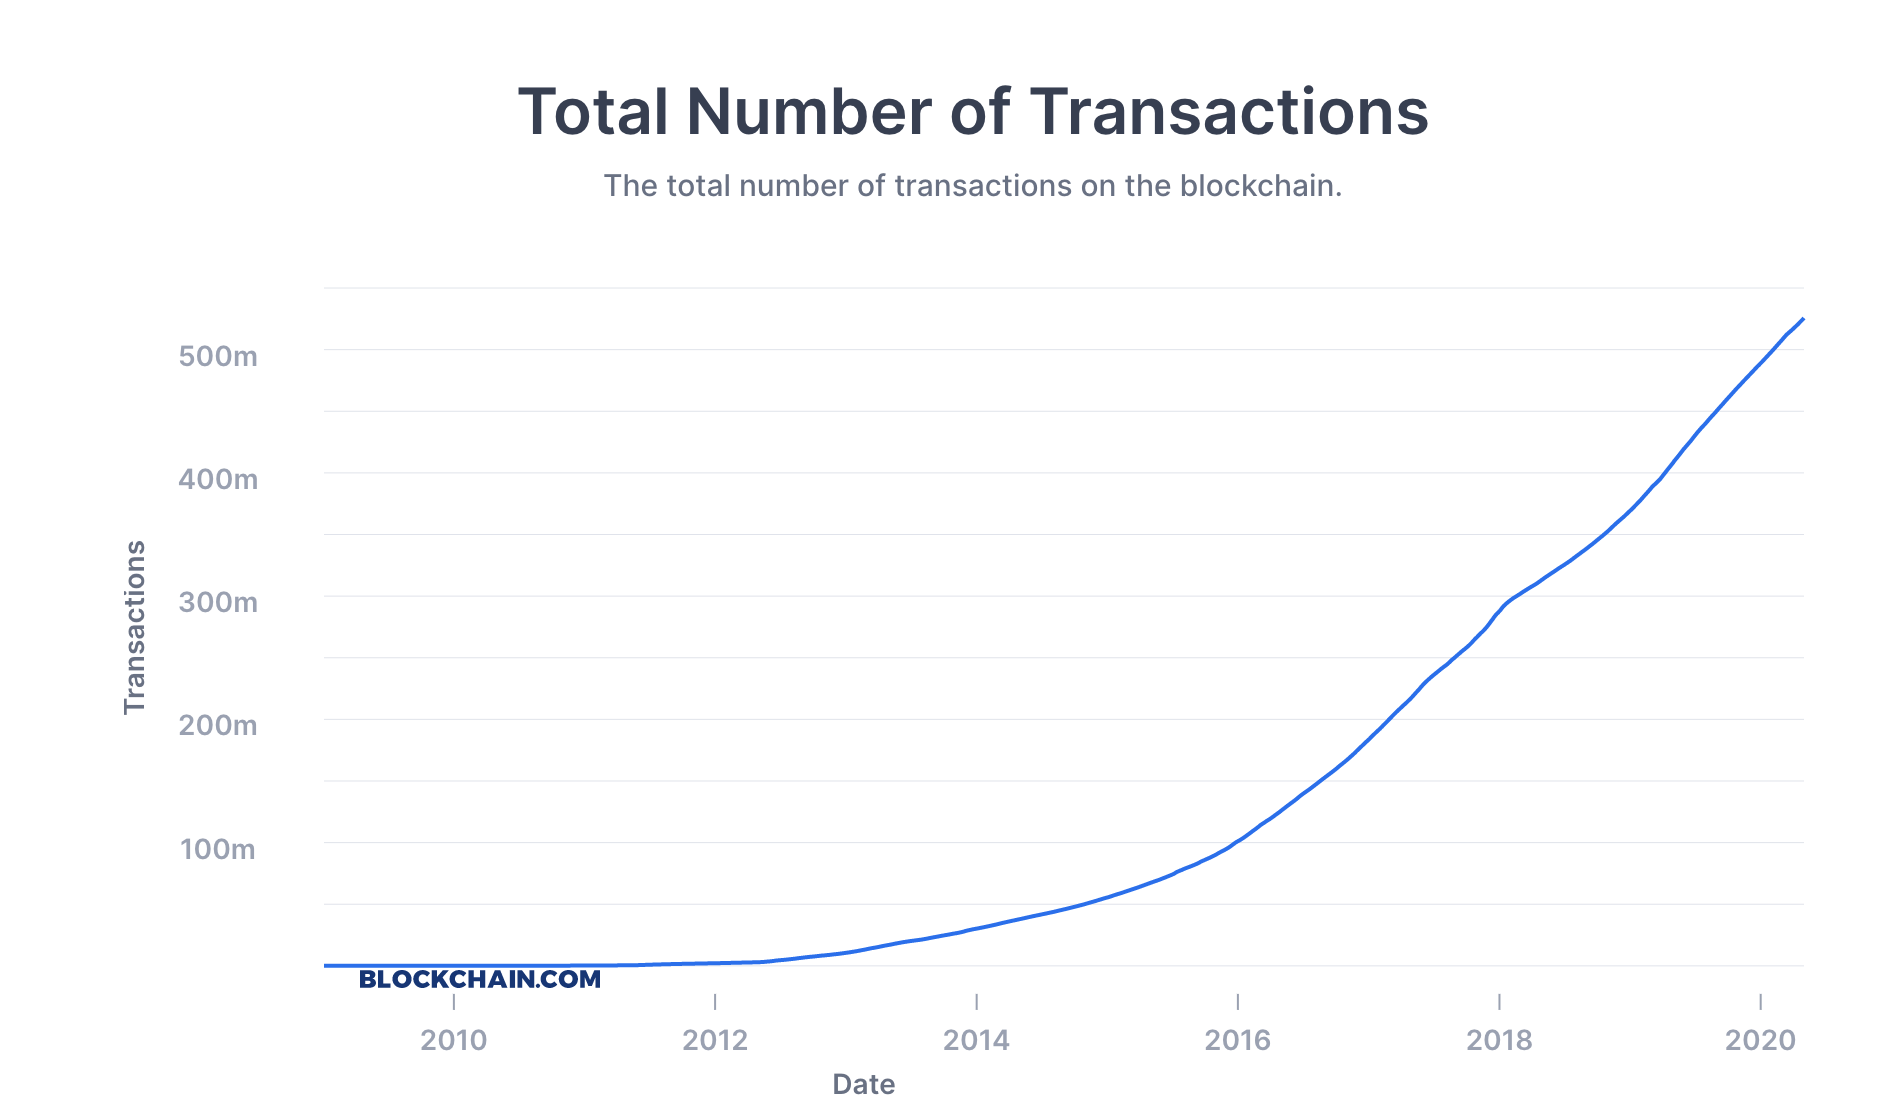 bitcoin-transaction-volume-growth-2020